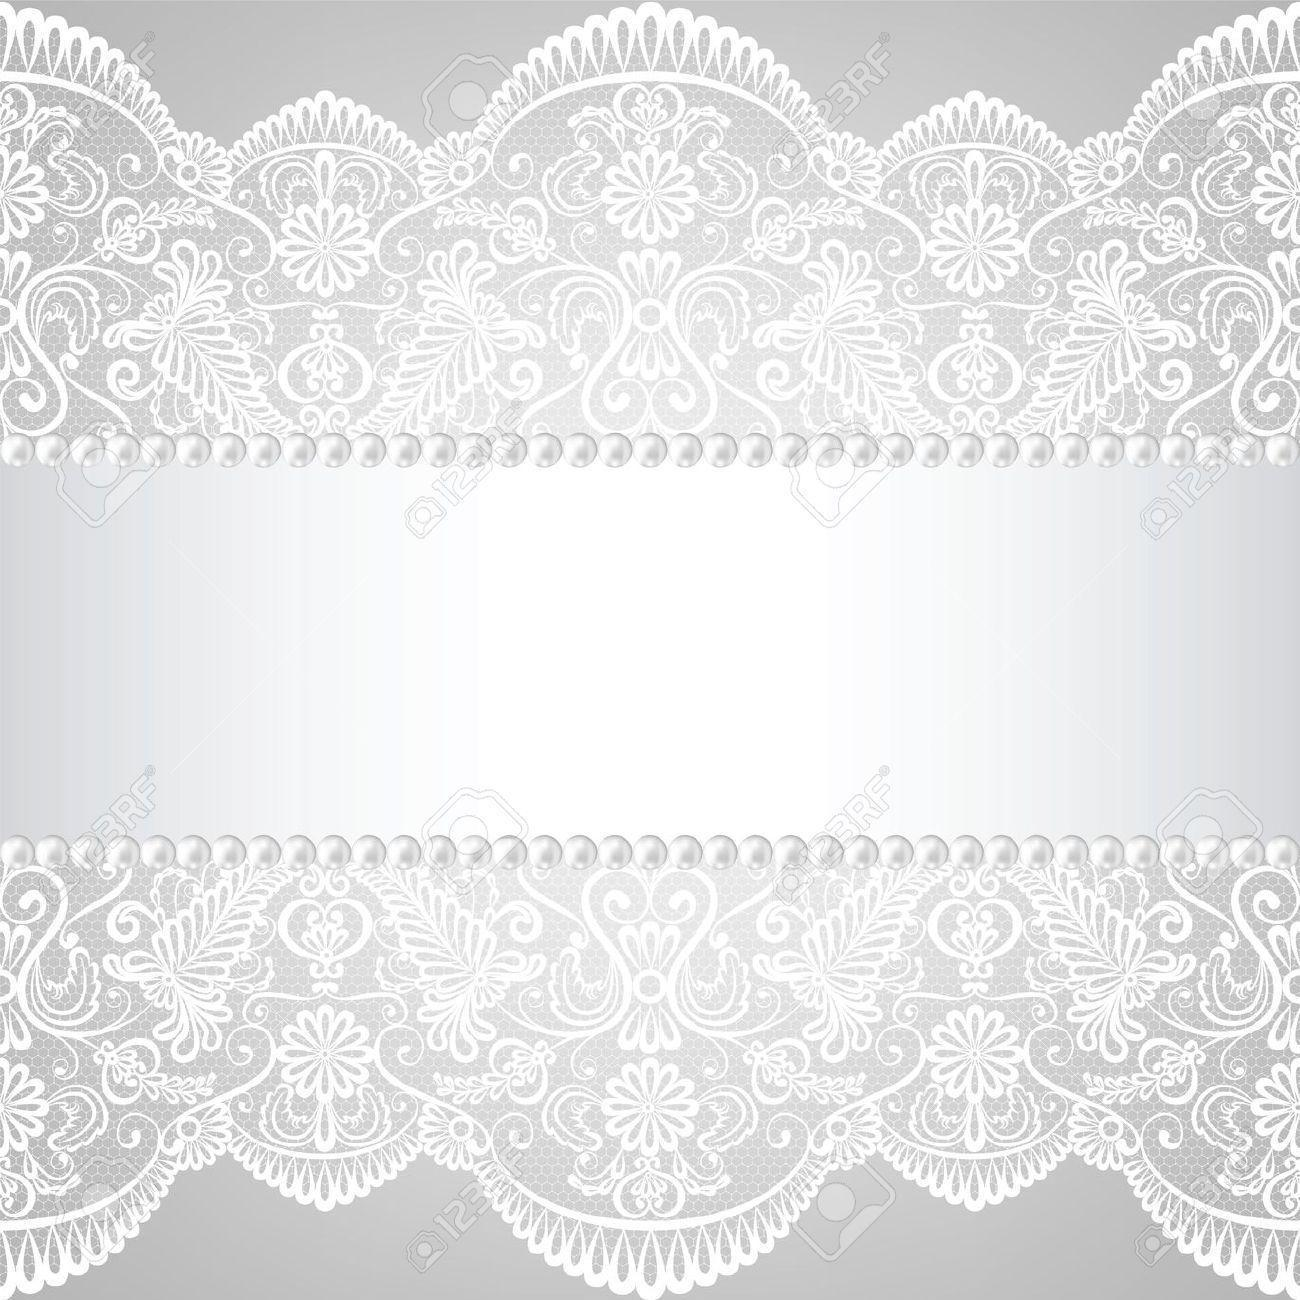 white lace tumblr backgrounds - photo #31